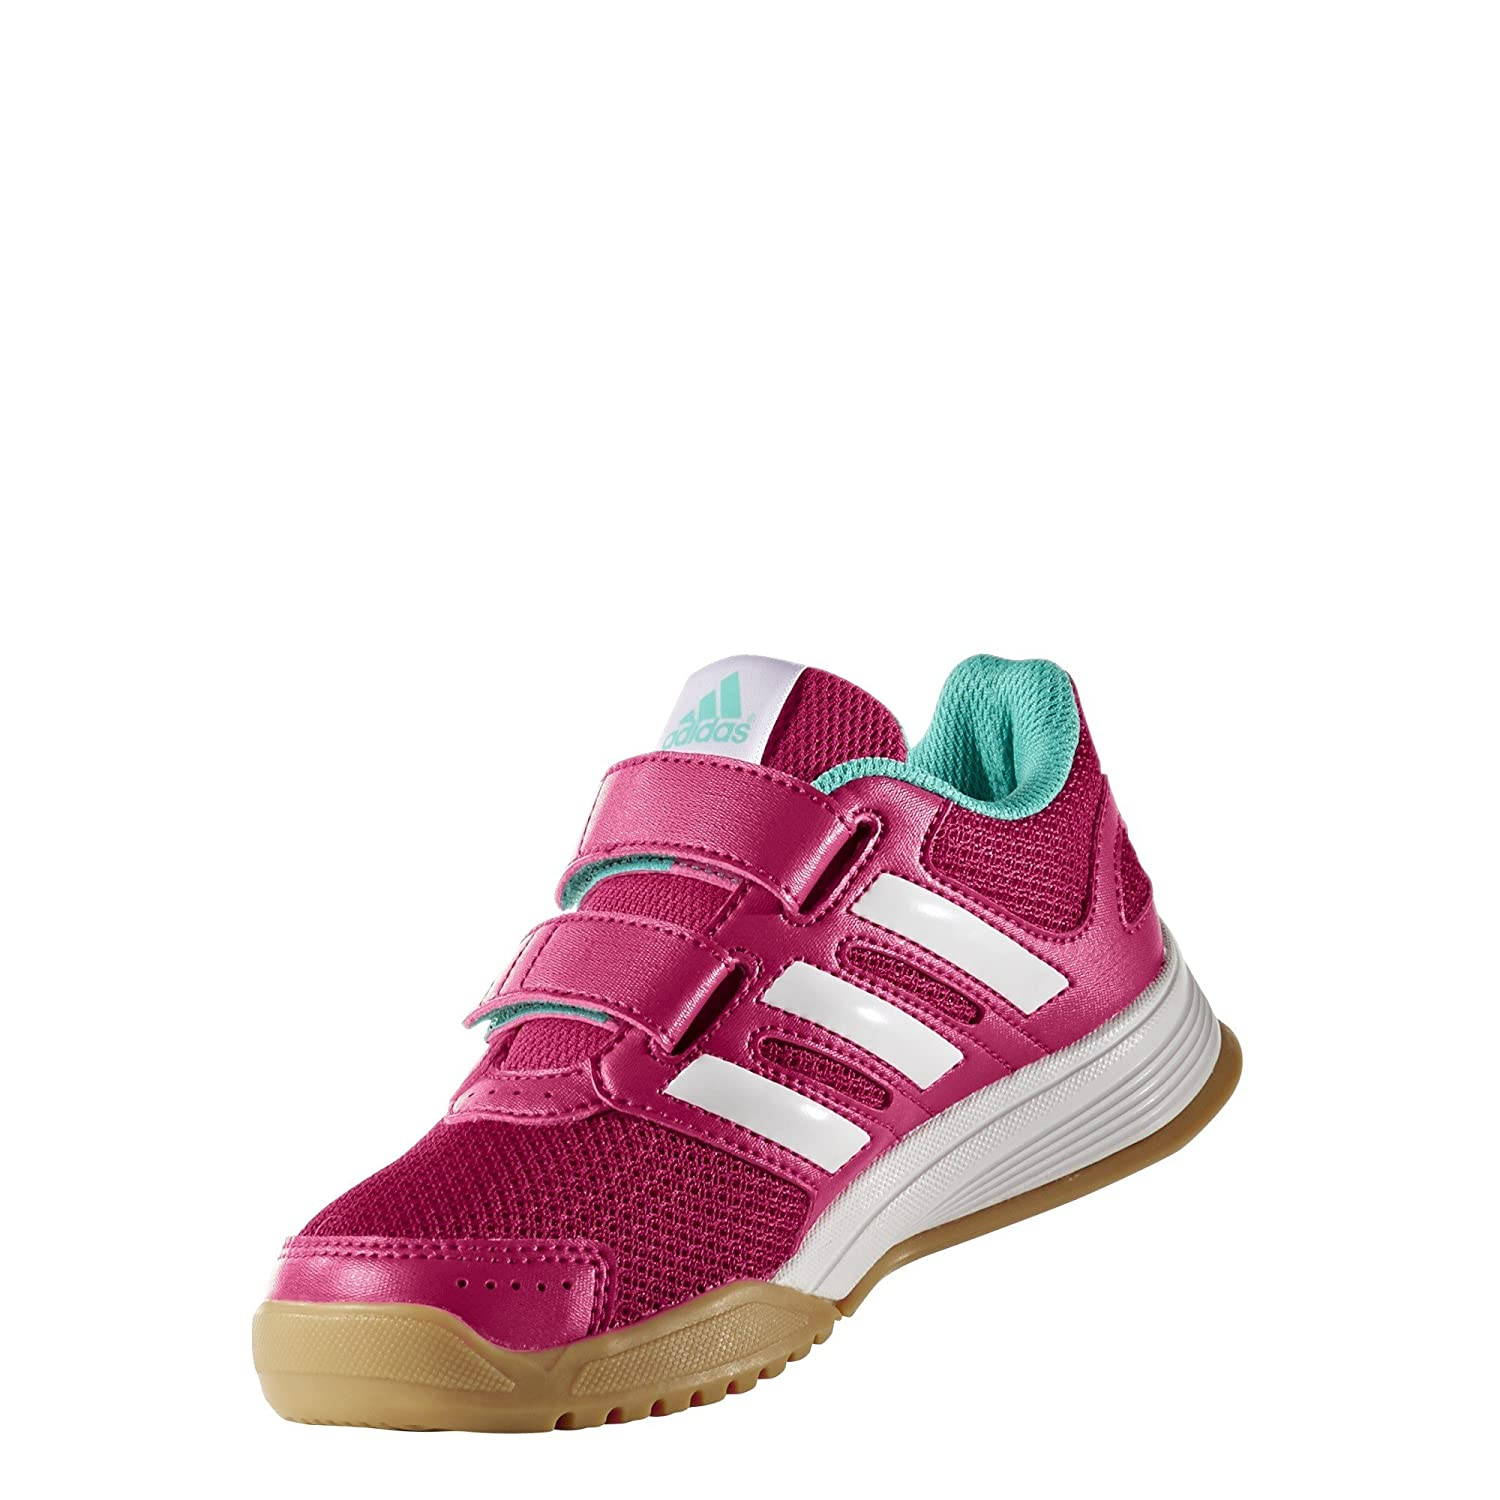 Adidas Interplay CF K/S76507, Zapatillas Unisex Niños S76506